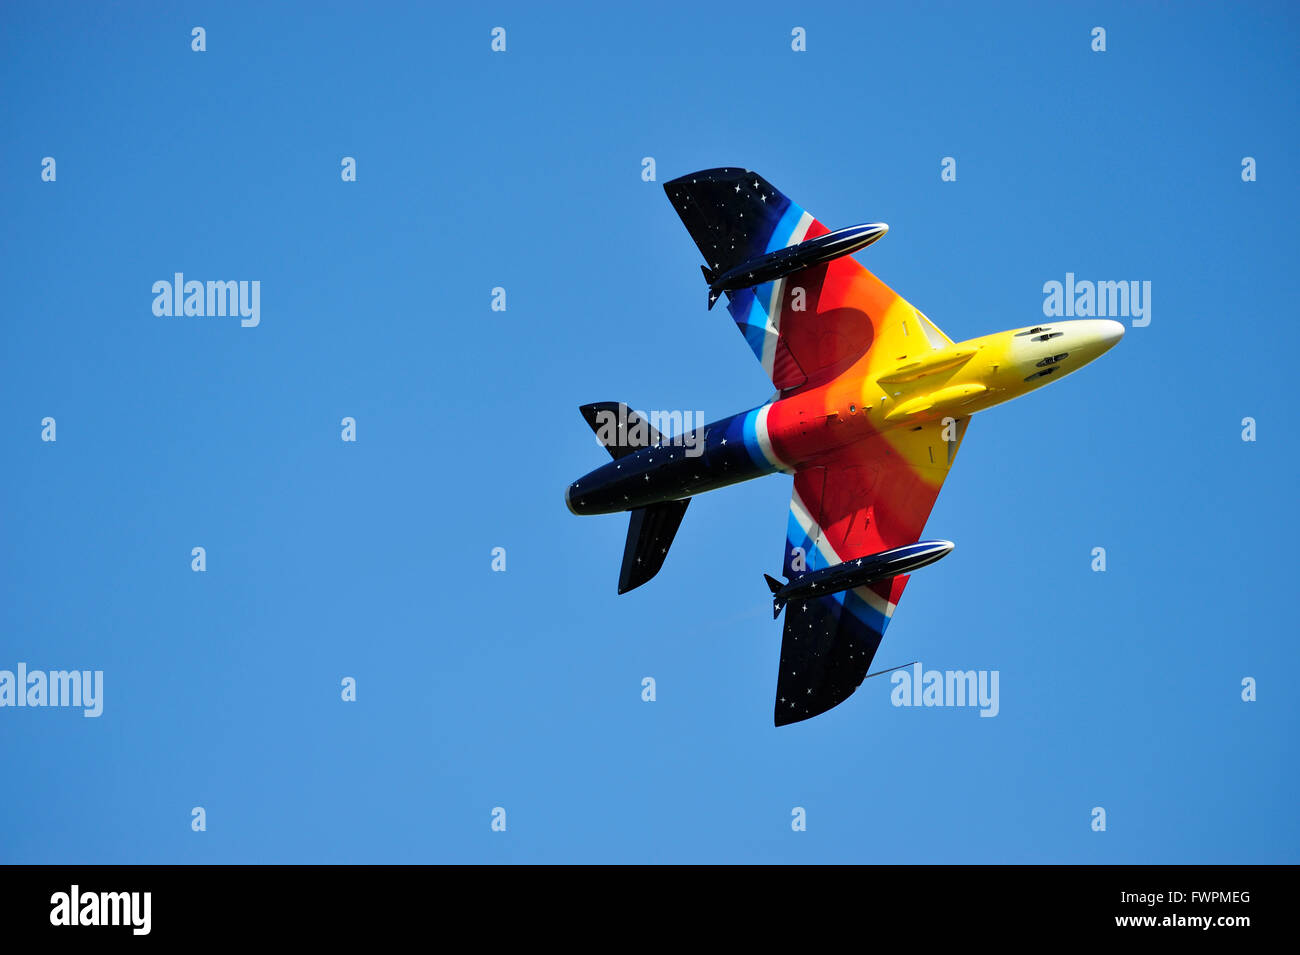 "Hawker Hunter F58 G-PSST ""Miss Demeanour""  during its display at East Fortune Airshow 2011 Stock Photo"